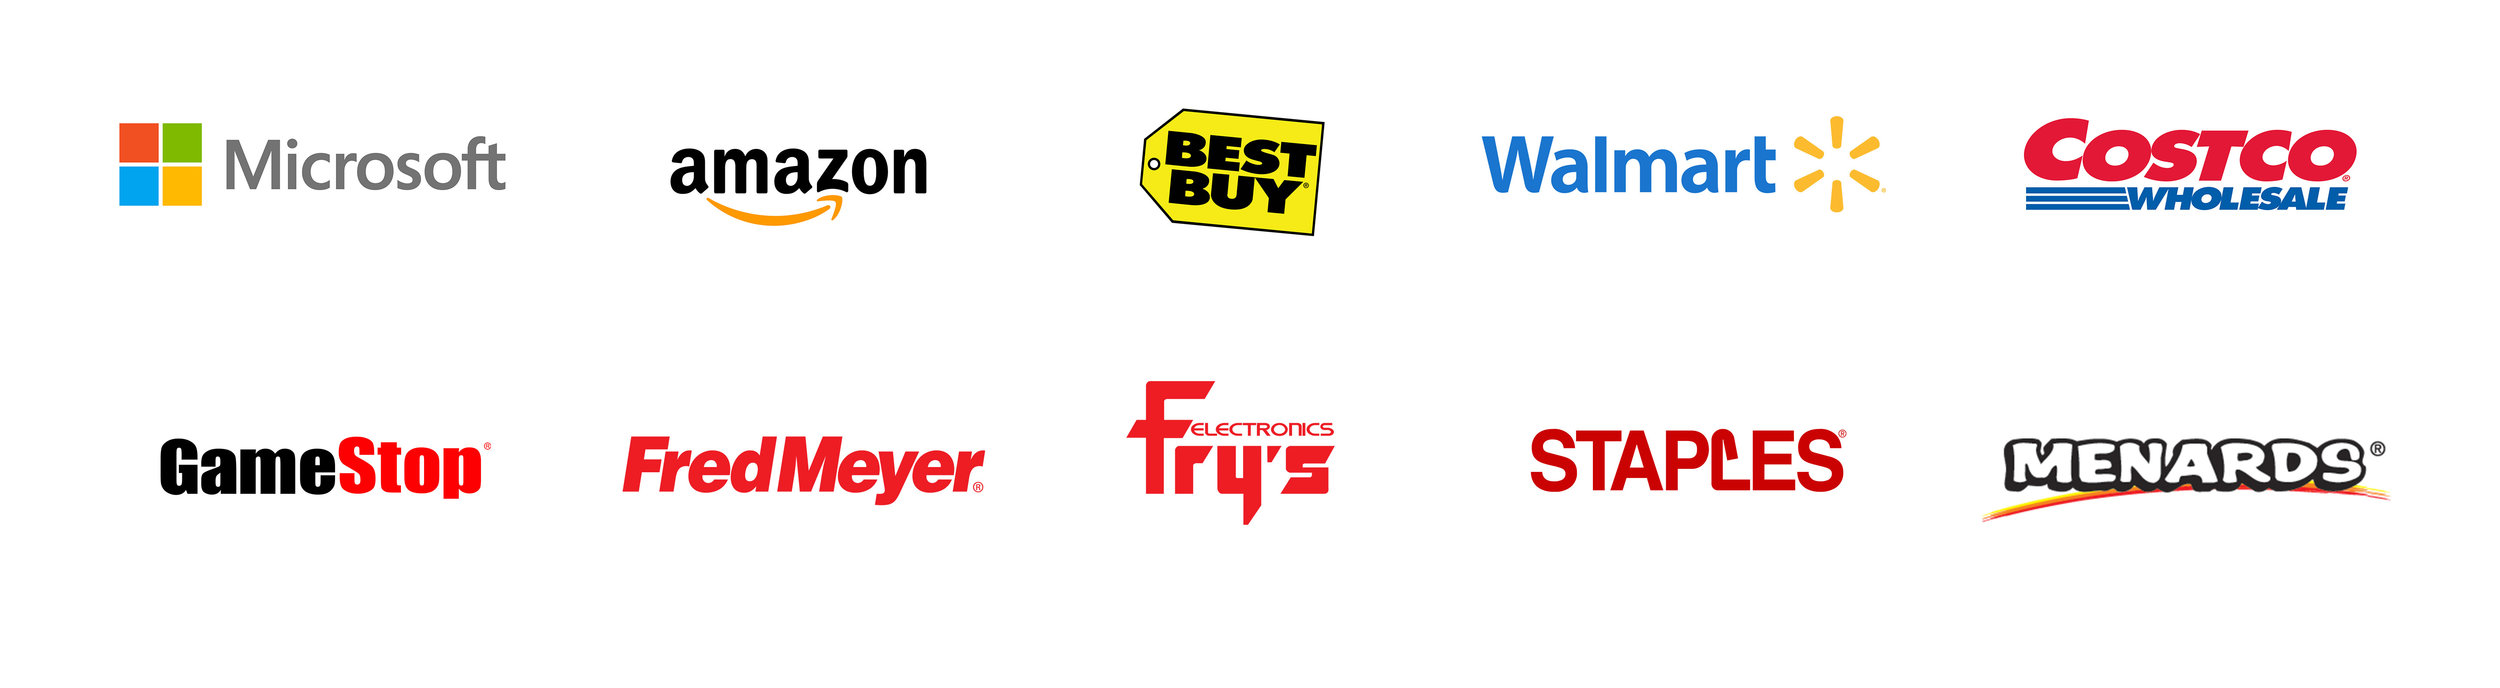 featured-brands.jpg